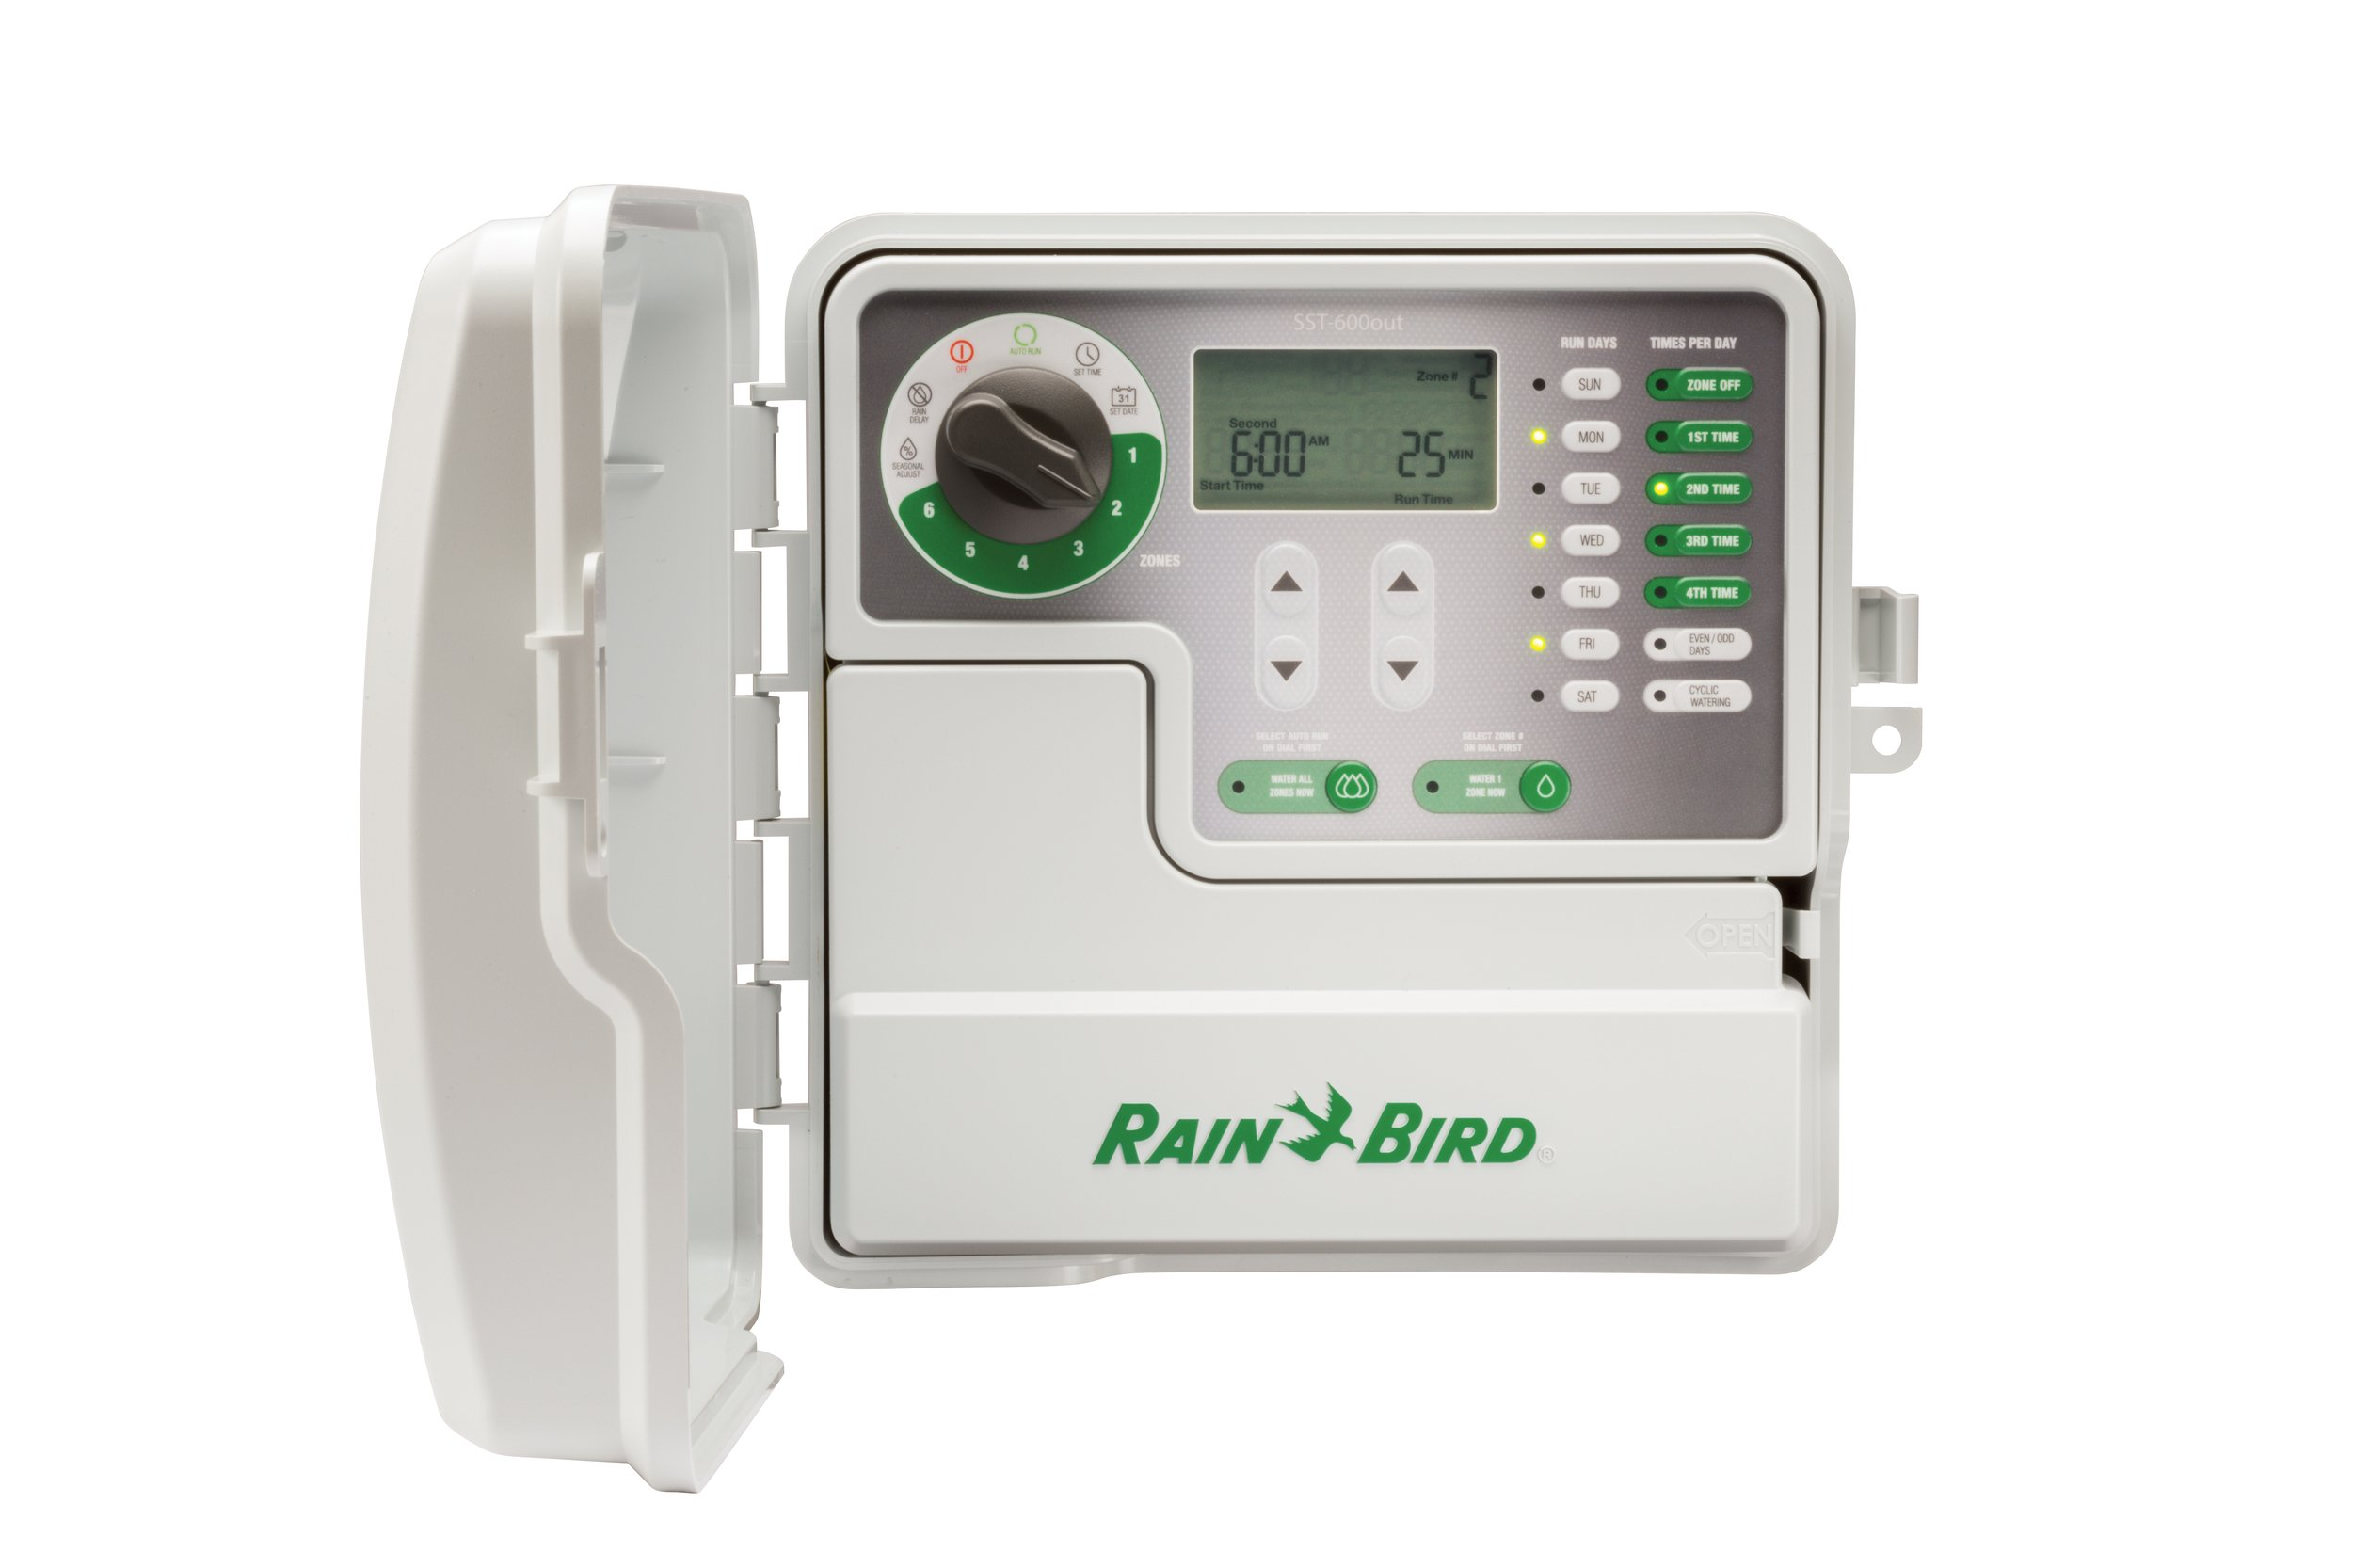 Rain Bird SST600OUT Simple-To-Set Indoor/Outdoor Sprinkler/Irrigation Timer/Controller, 6-Zone/Station (this new/improved model replaces SST600O)